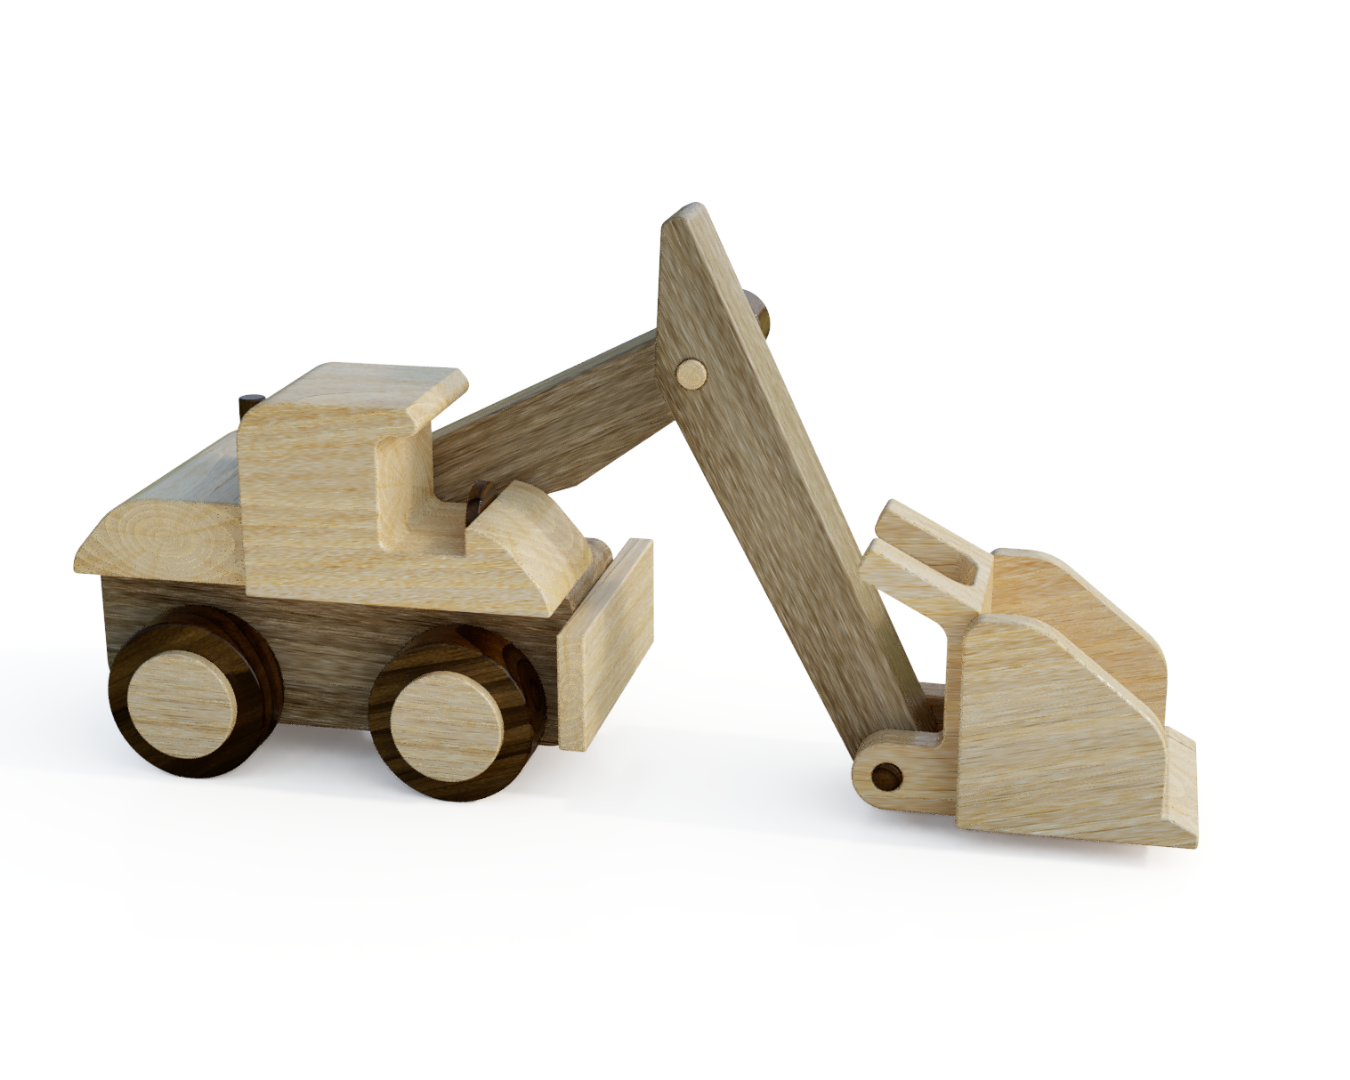 002 Wood Toy Power Shovel 05-19-2019.png